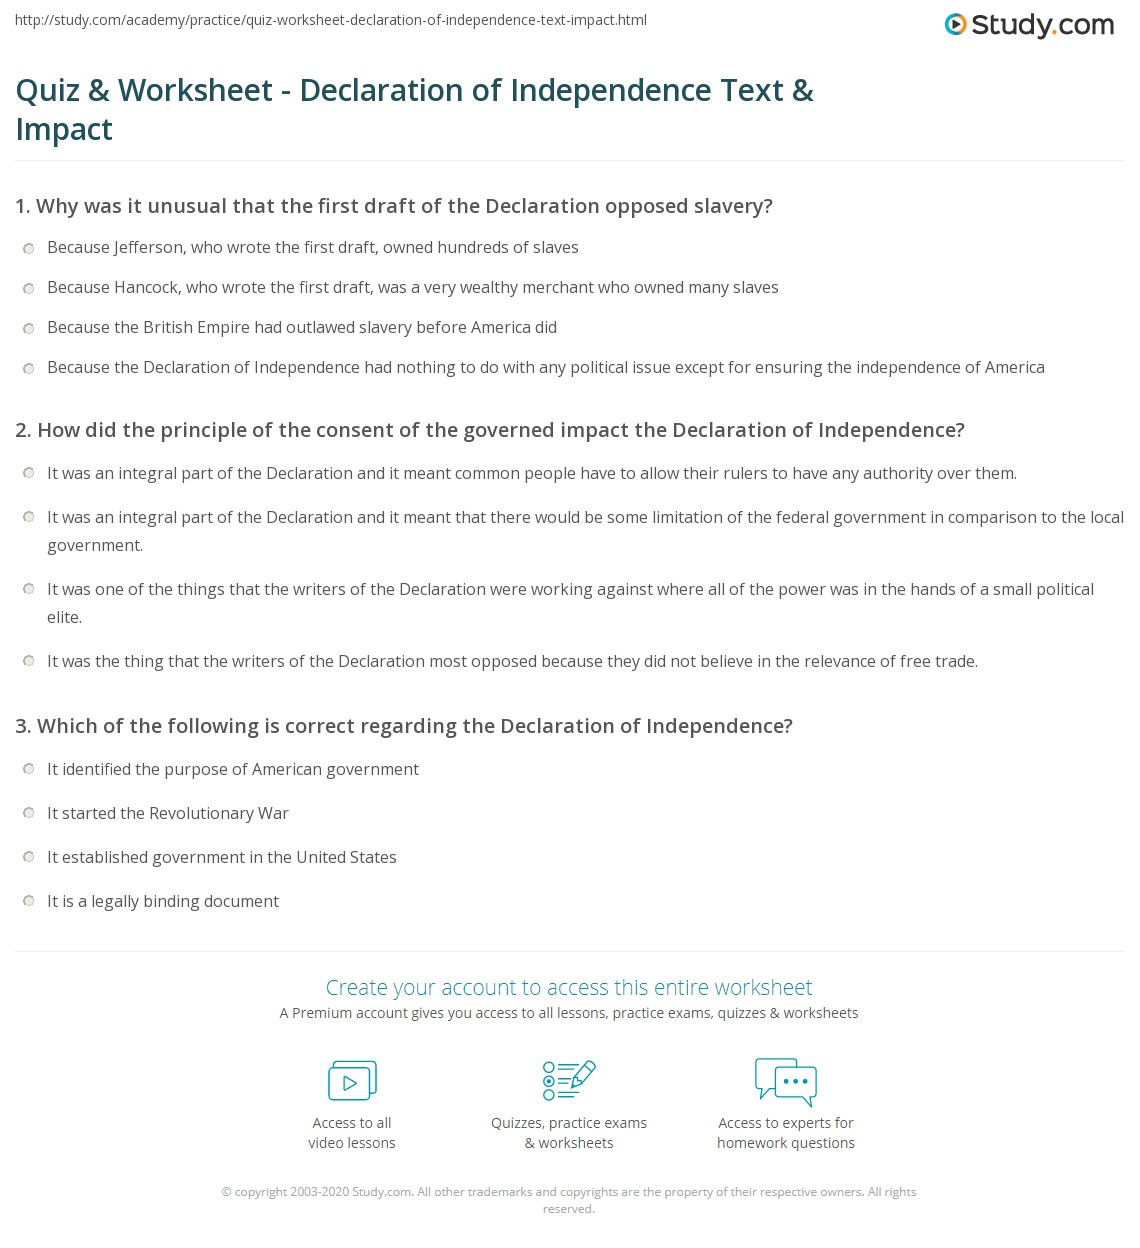 Print The Declaration Of Independence Text Signers And Legacy Worksheet